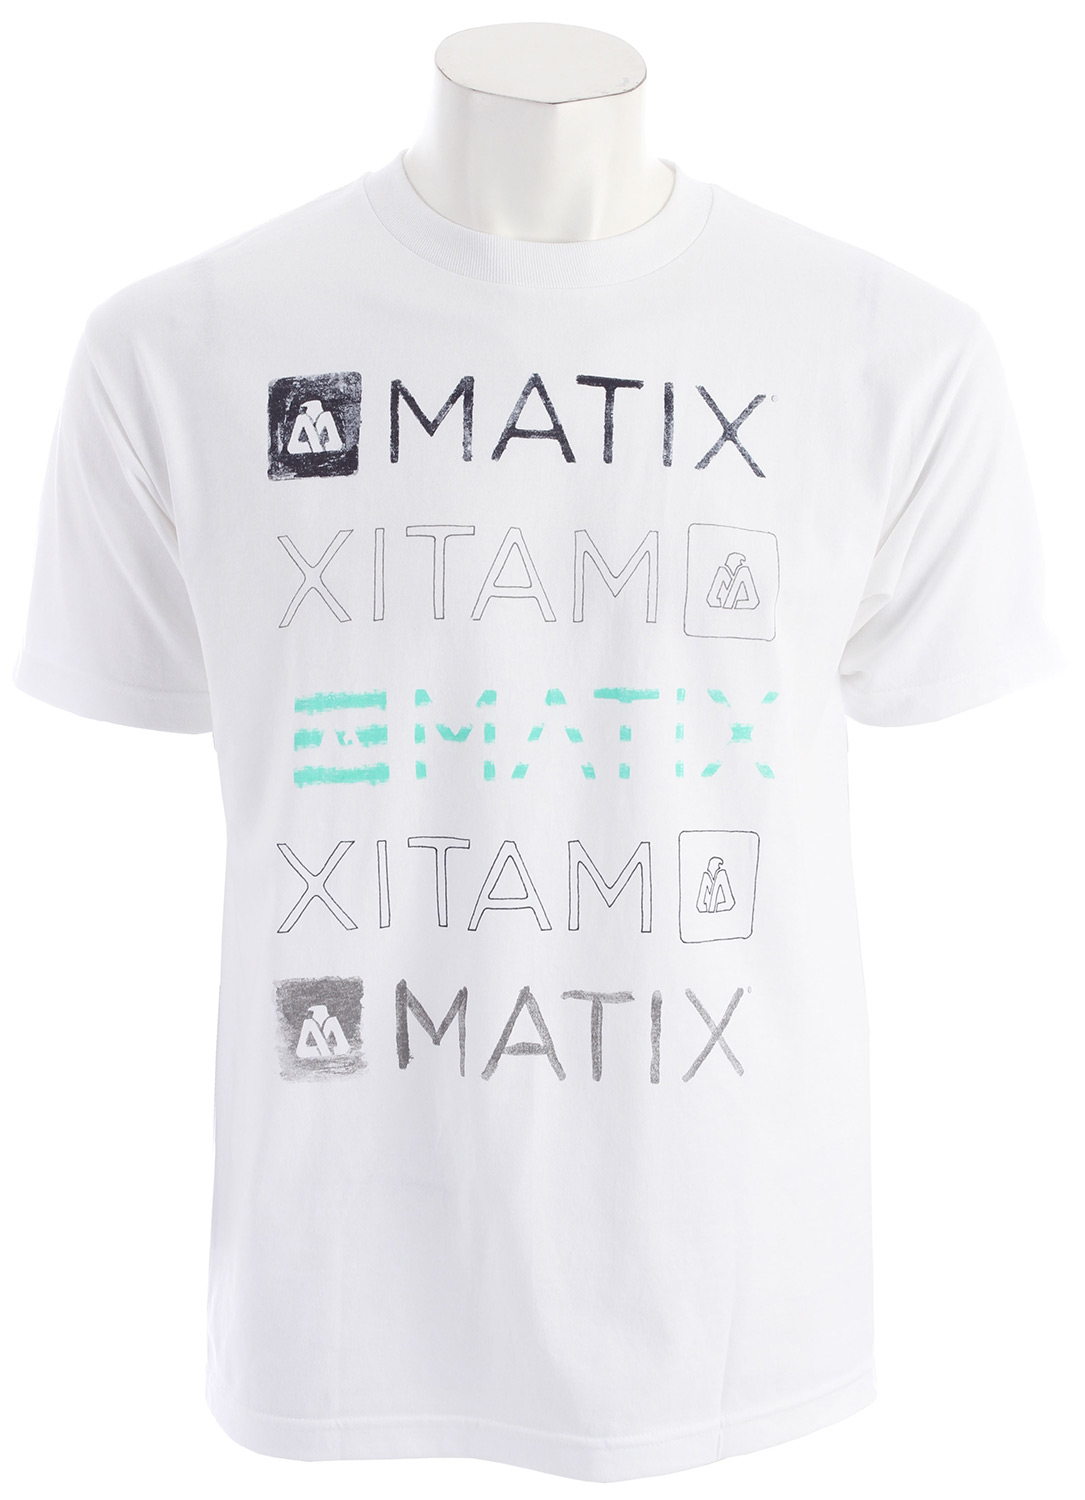 Key Features of the Matix Faded T-Shirt: Inkprint with cuff label and Monovert lower left back hit. Standard Fit. Material: 100% Cotton - $12.95